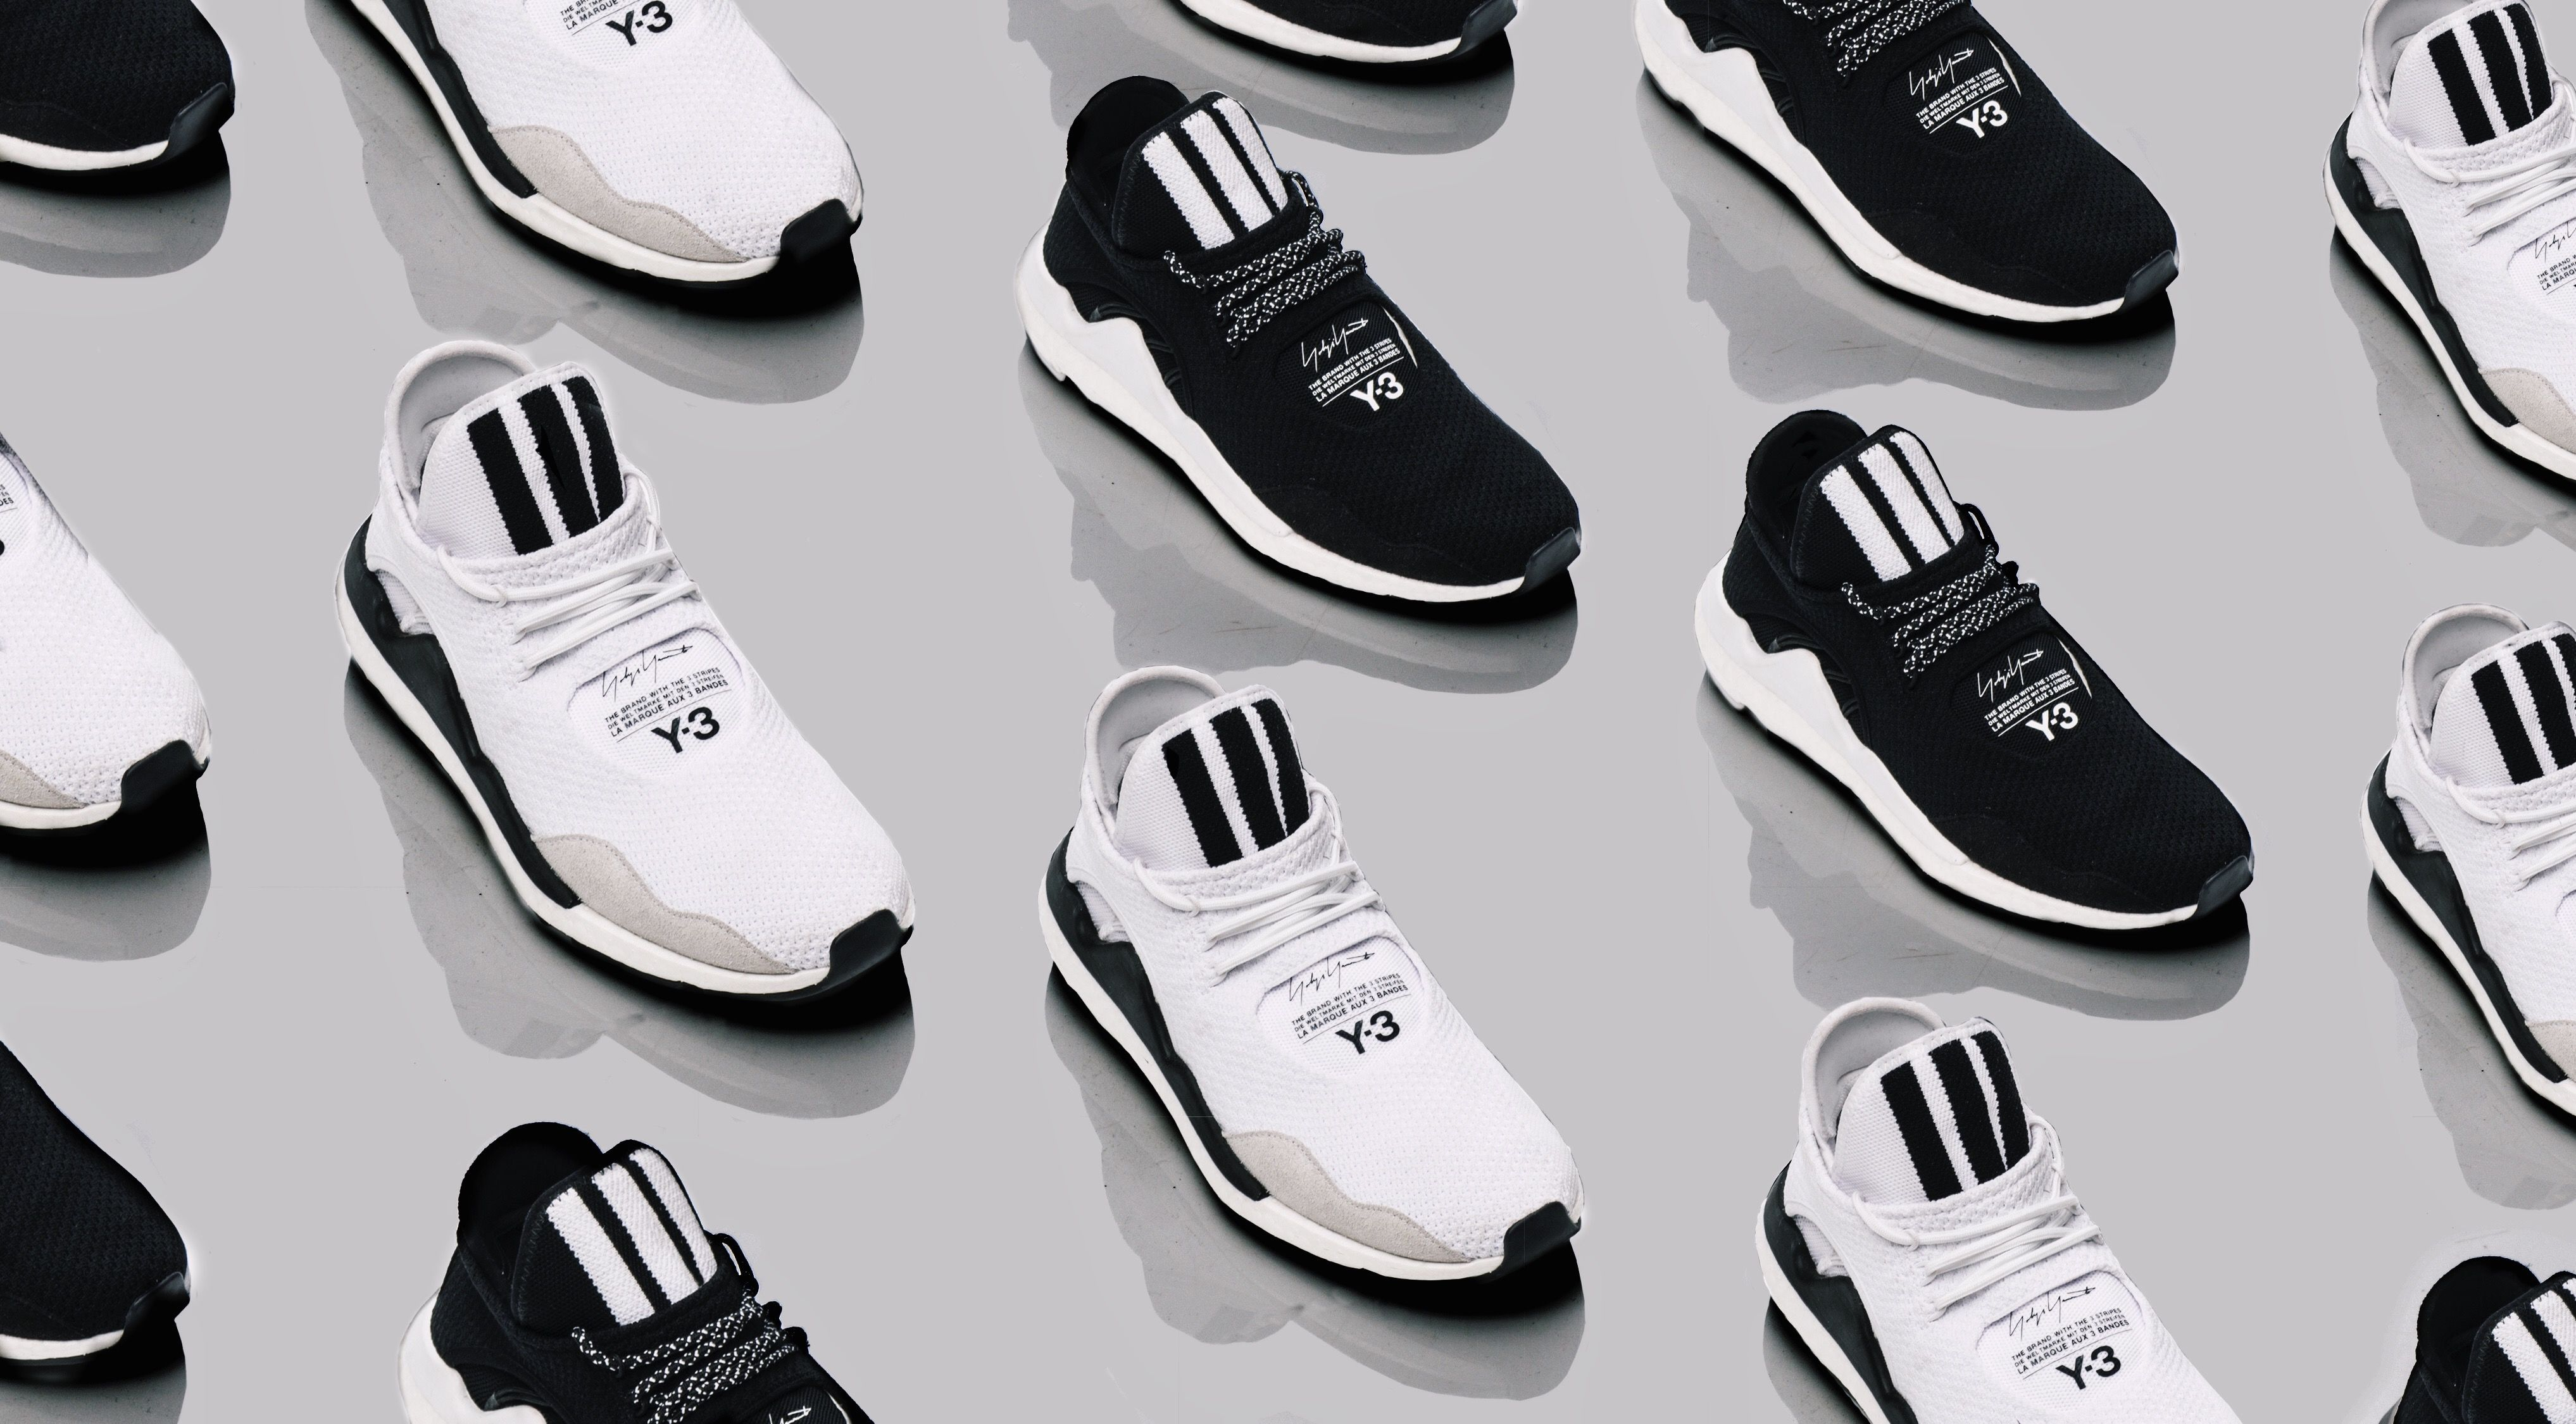 e1857a0a0c5 A Closer Look at the adidas Y-3 Kusari & Saikou Sneakers - Coggles